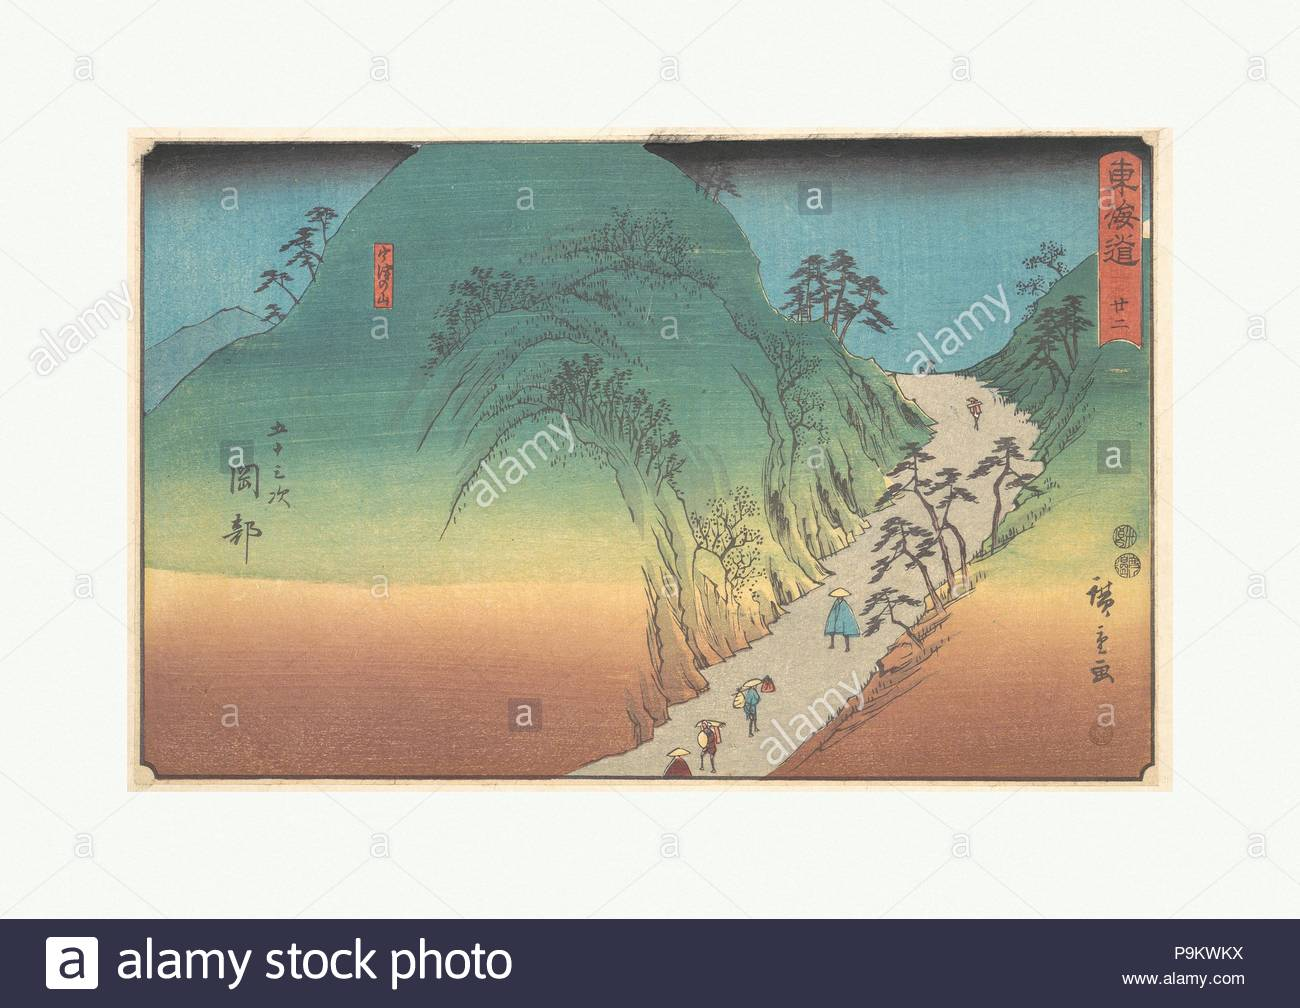 1840 Japan Polychrome Woodblock Print Ink And Color On Paper Overall 8 3 4 X 13 4in 222 349cm Prints Utagawa Hiroshige Japanese